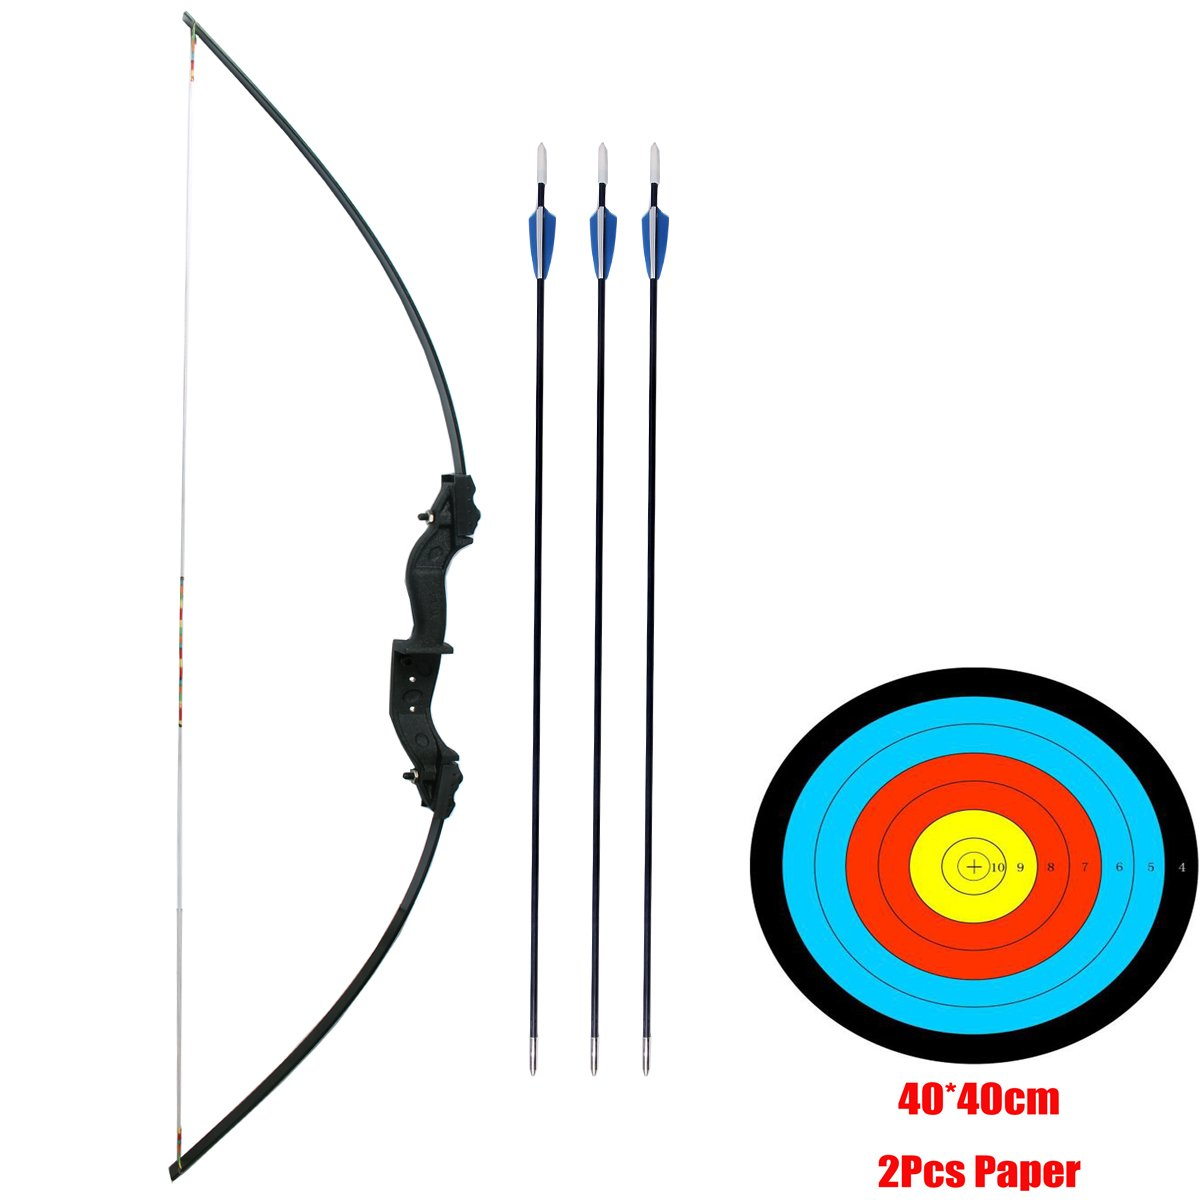 """PG1ARCHERY Takedown Bow and Arrow Set, 51"""" Hunting Targeting Practice Archery Set for Kids Youth Junior Beginner Starter with Fiberglass Arrows & Target Paper"""